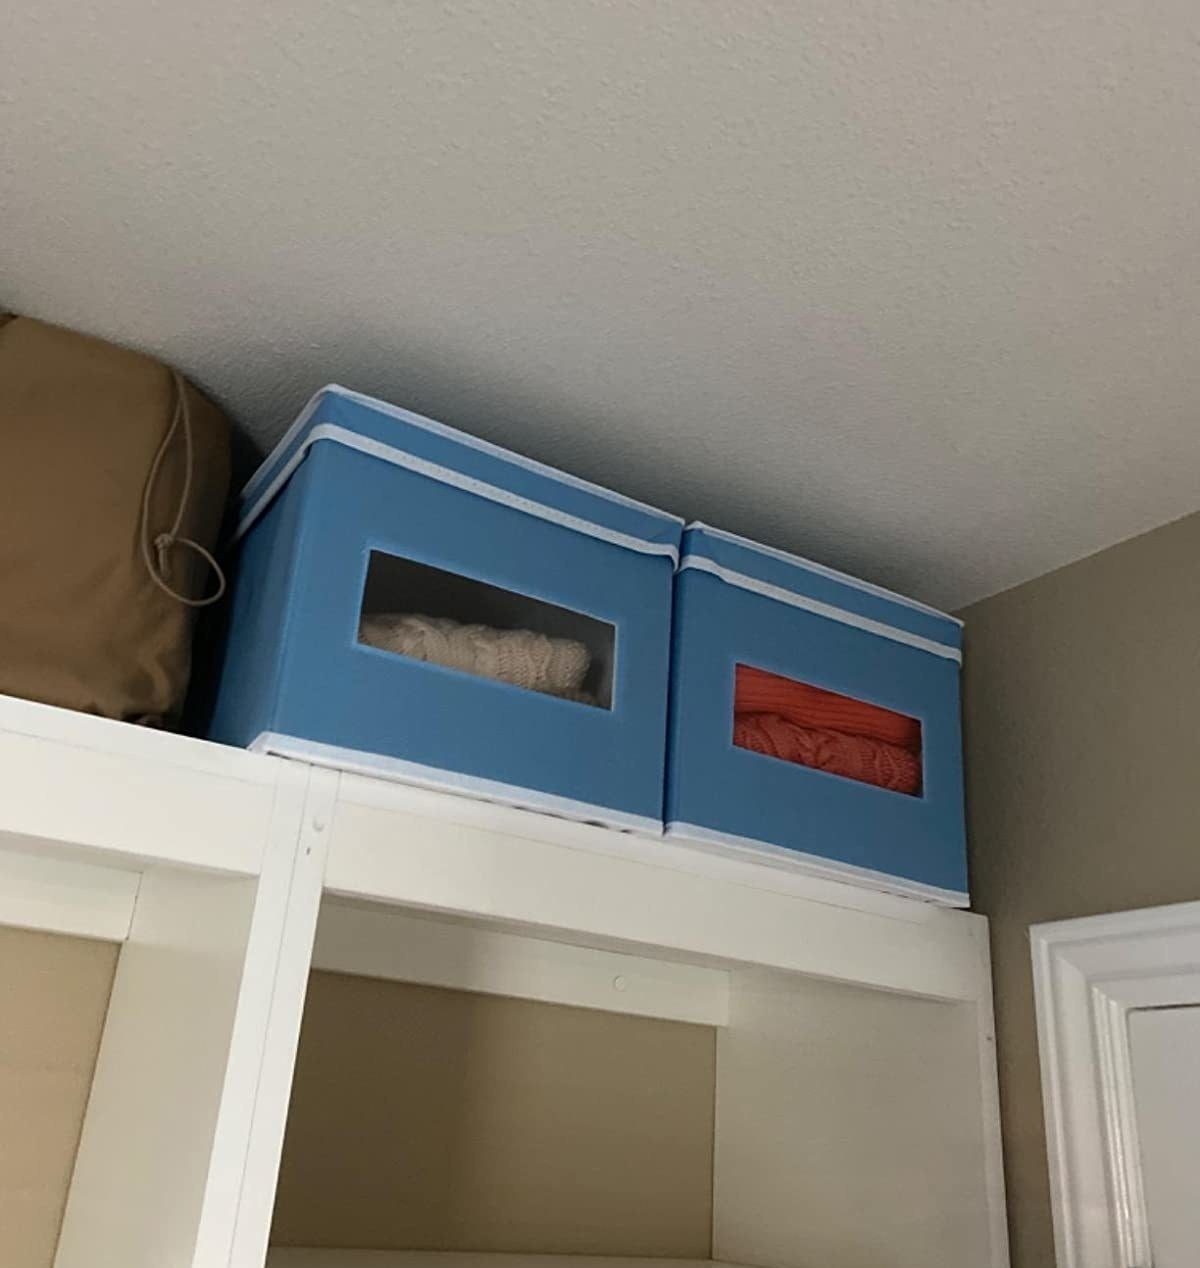 reviewer image of two light blue mDesign fabric storage boxes on top of a closet